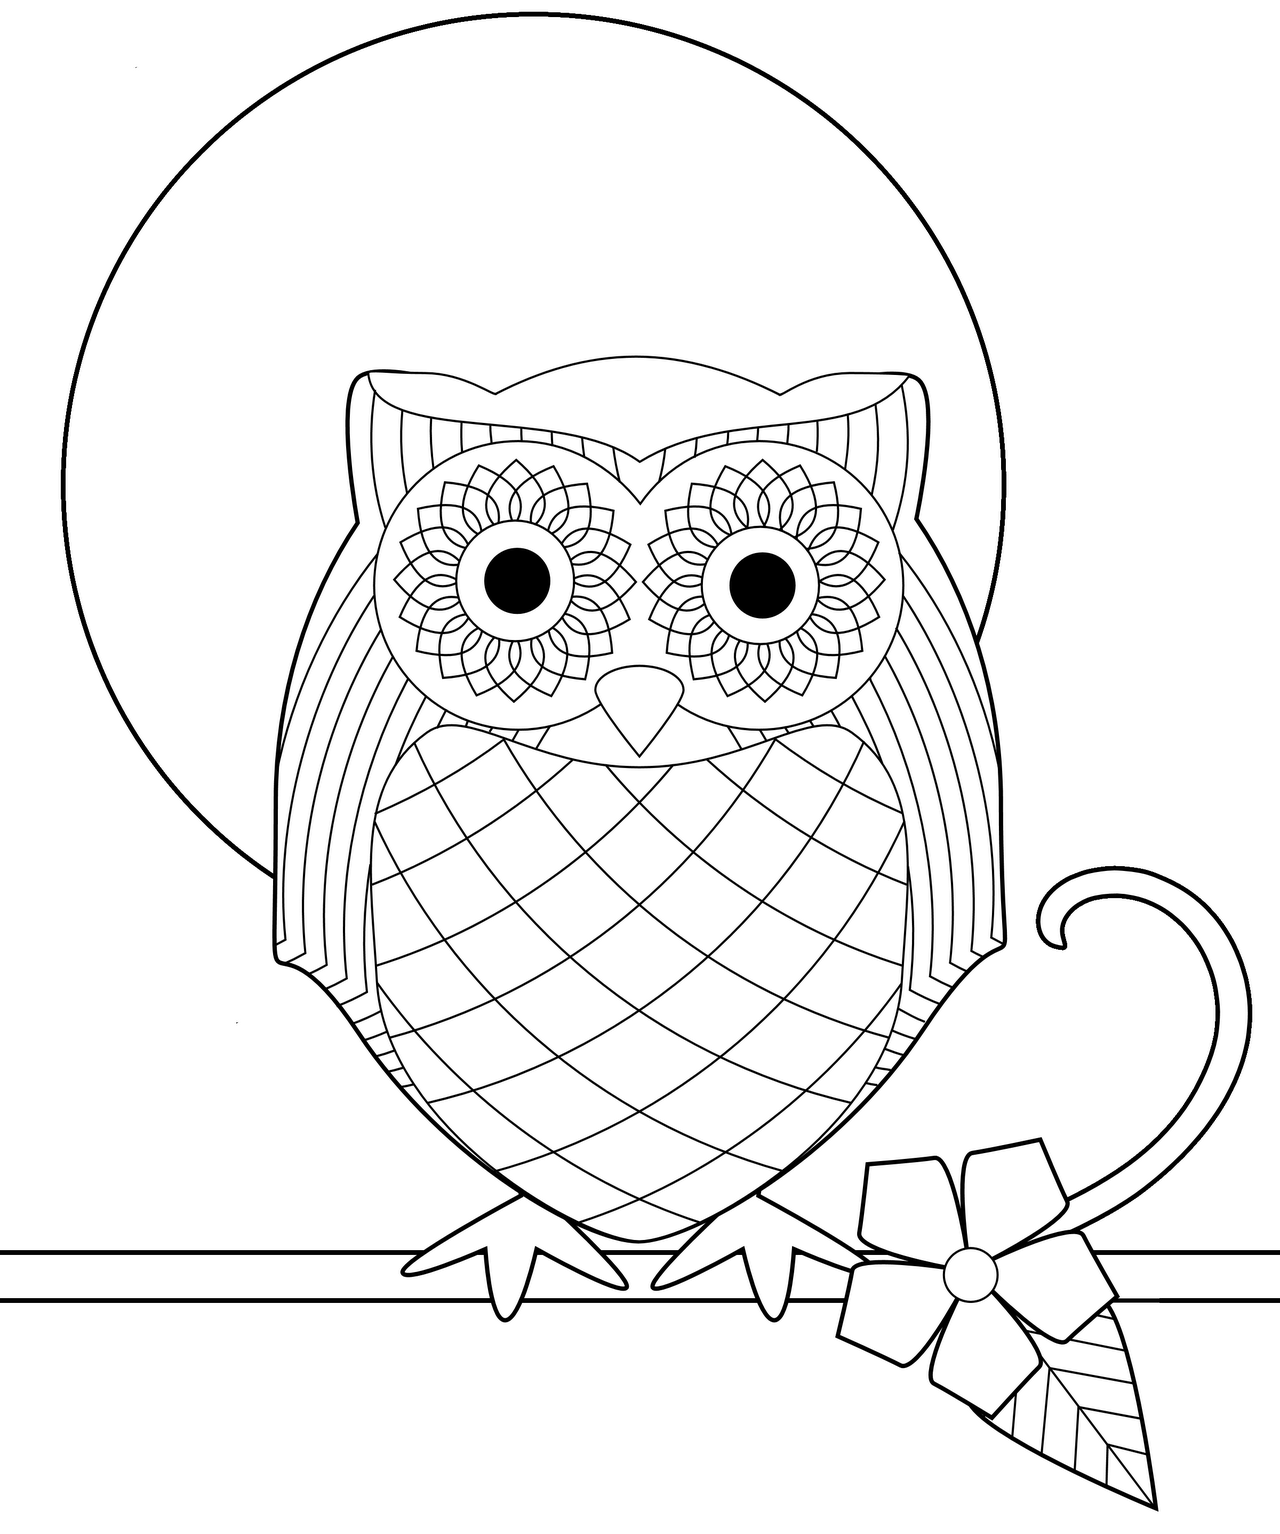 Coloring Pages Printable Coloring Pages Of Owls cute owl coloring pages az free printable page pages